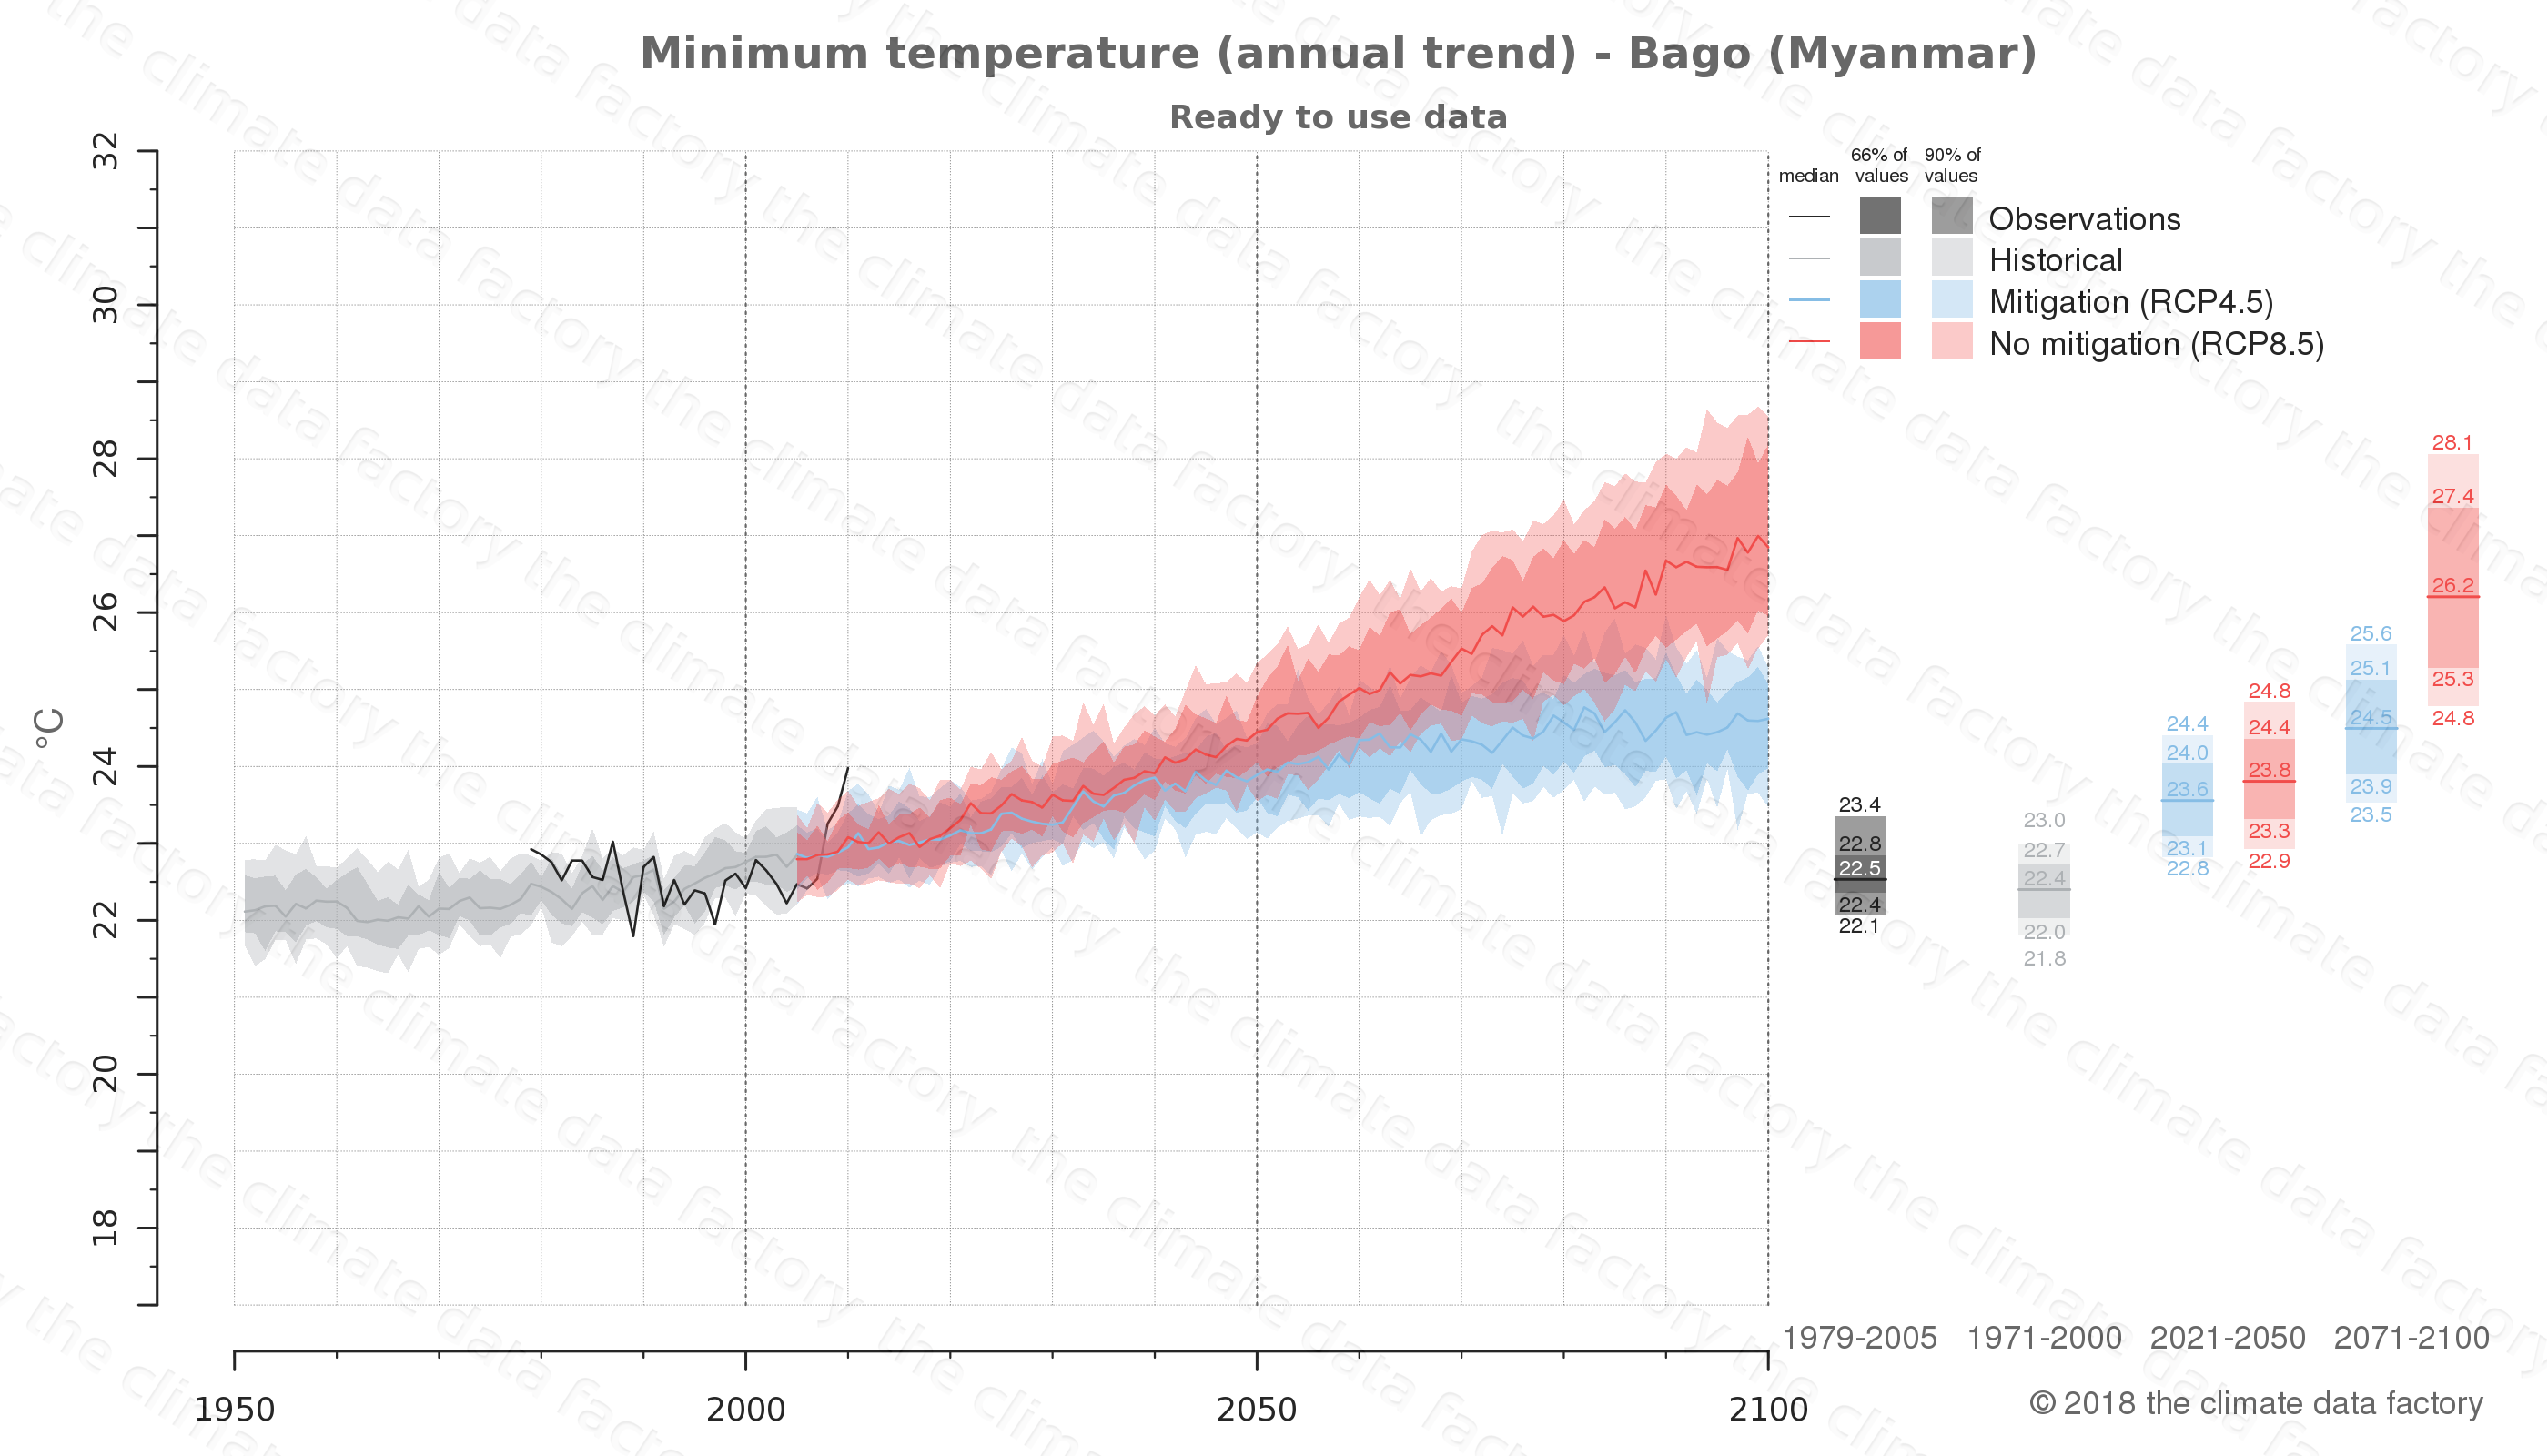 climate change data policy adaptation climate graph city data minimum-temperature bago myanmar